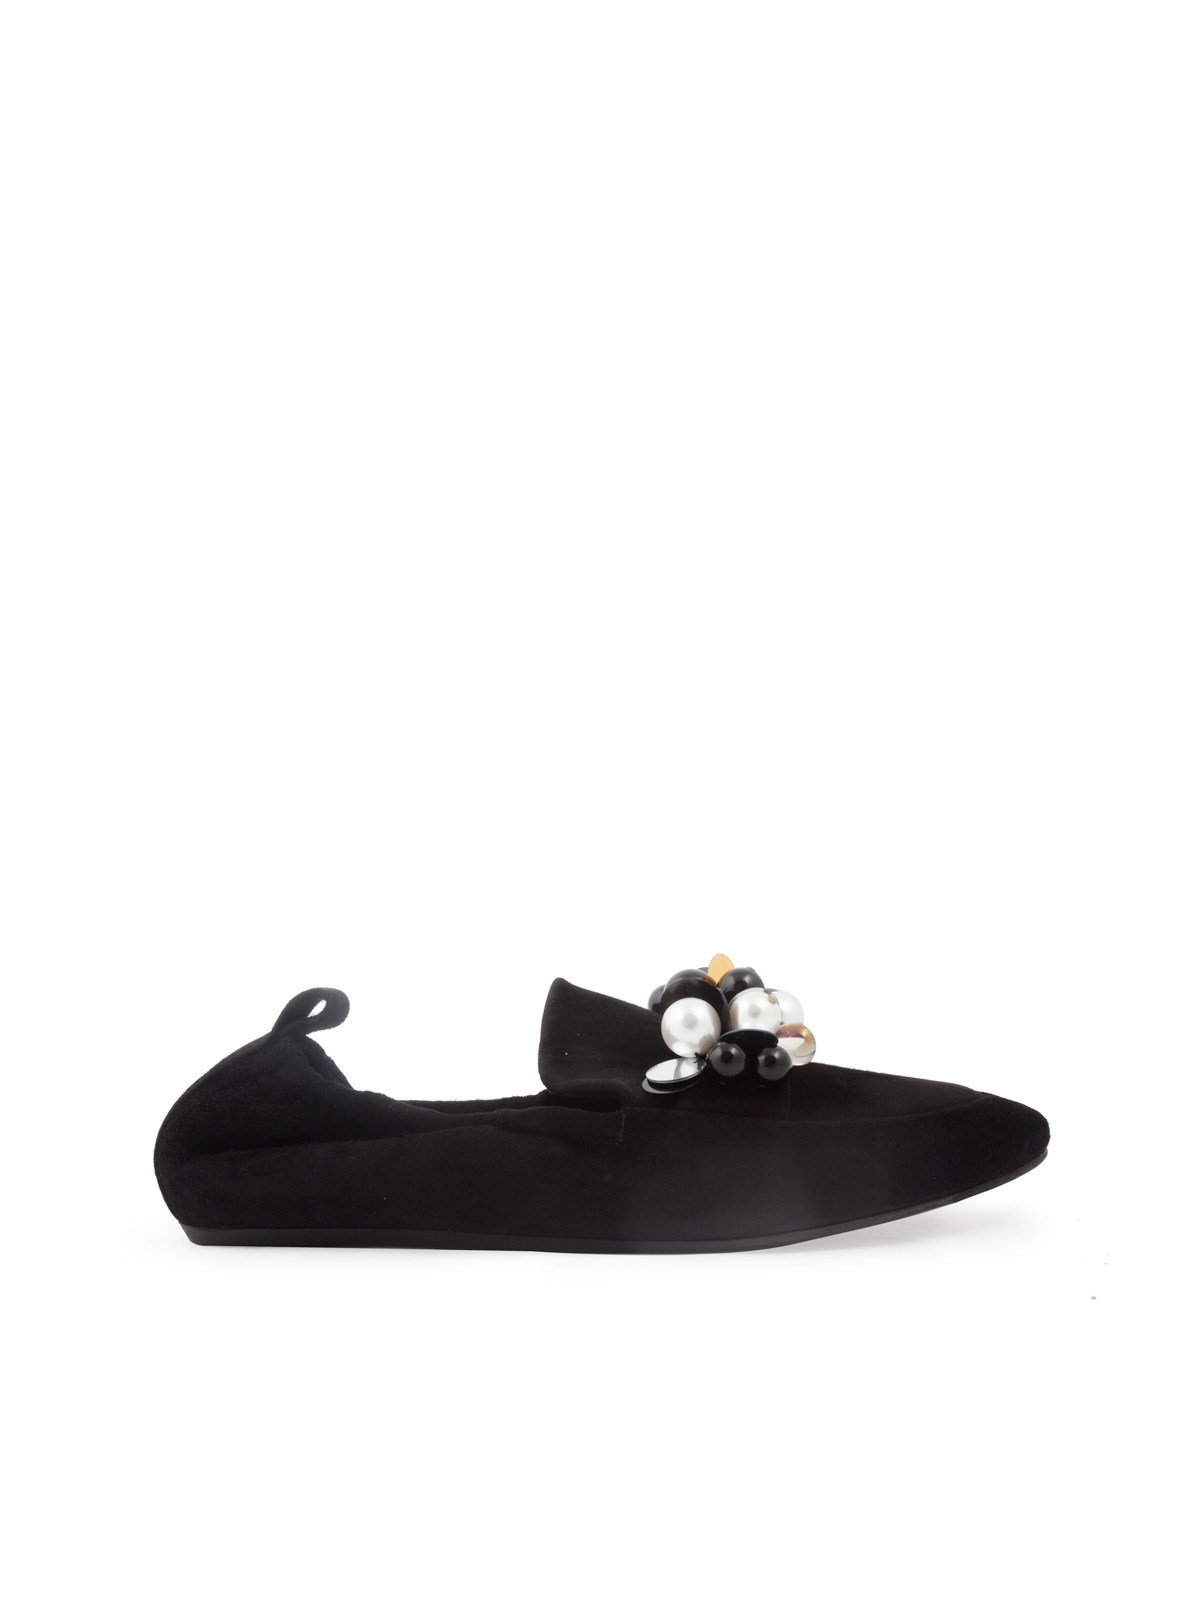 8b55725ba02 lanvin LOAFERS WITH PEARLS available on montiboutique.com - 21063